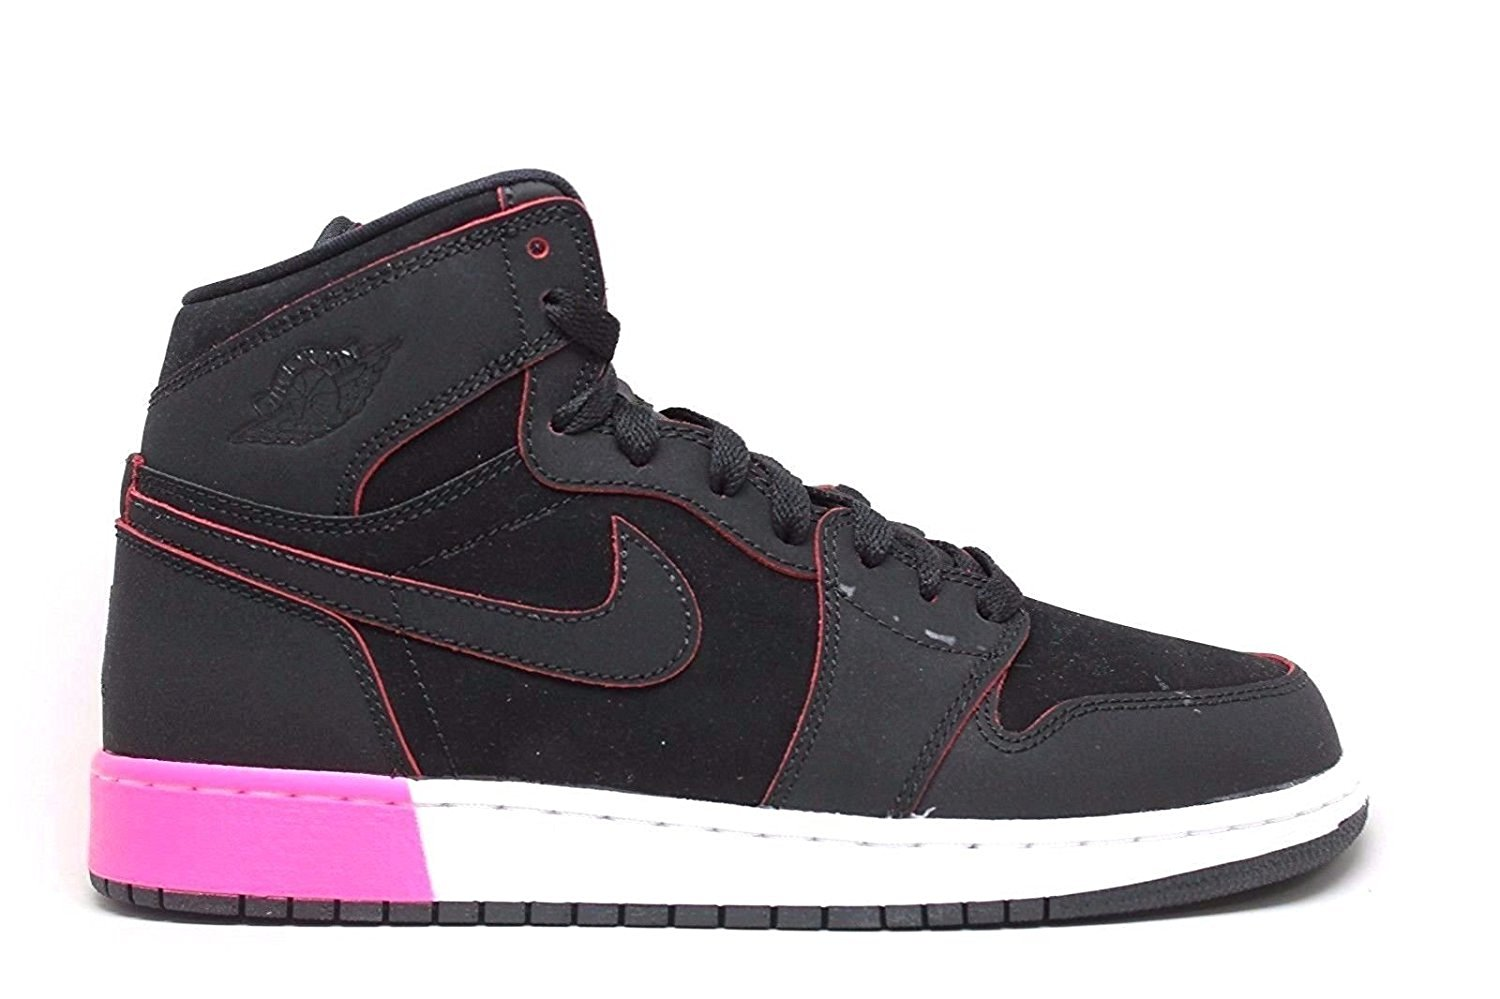 2f911dda6d85b9 Get Quotations · Jordan Retro 1 High Black Black-Hyper Pink-White (Big Kid)